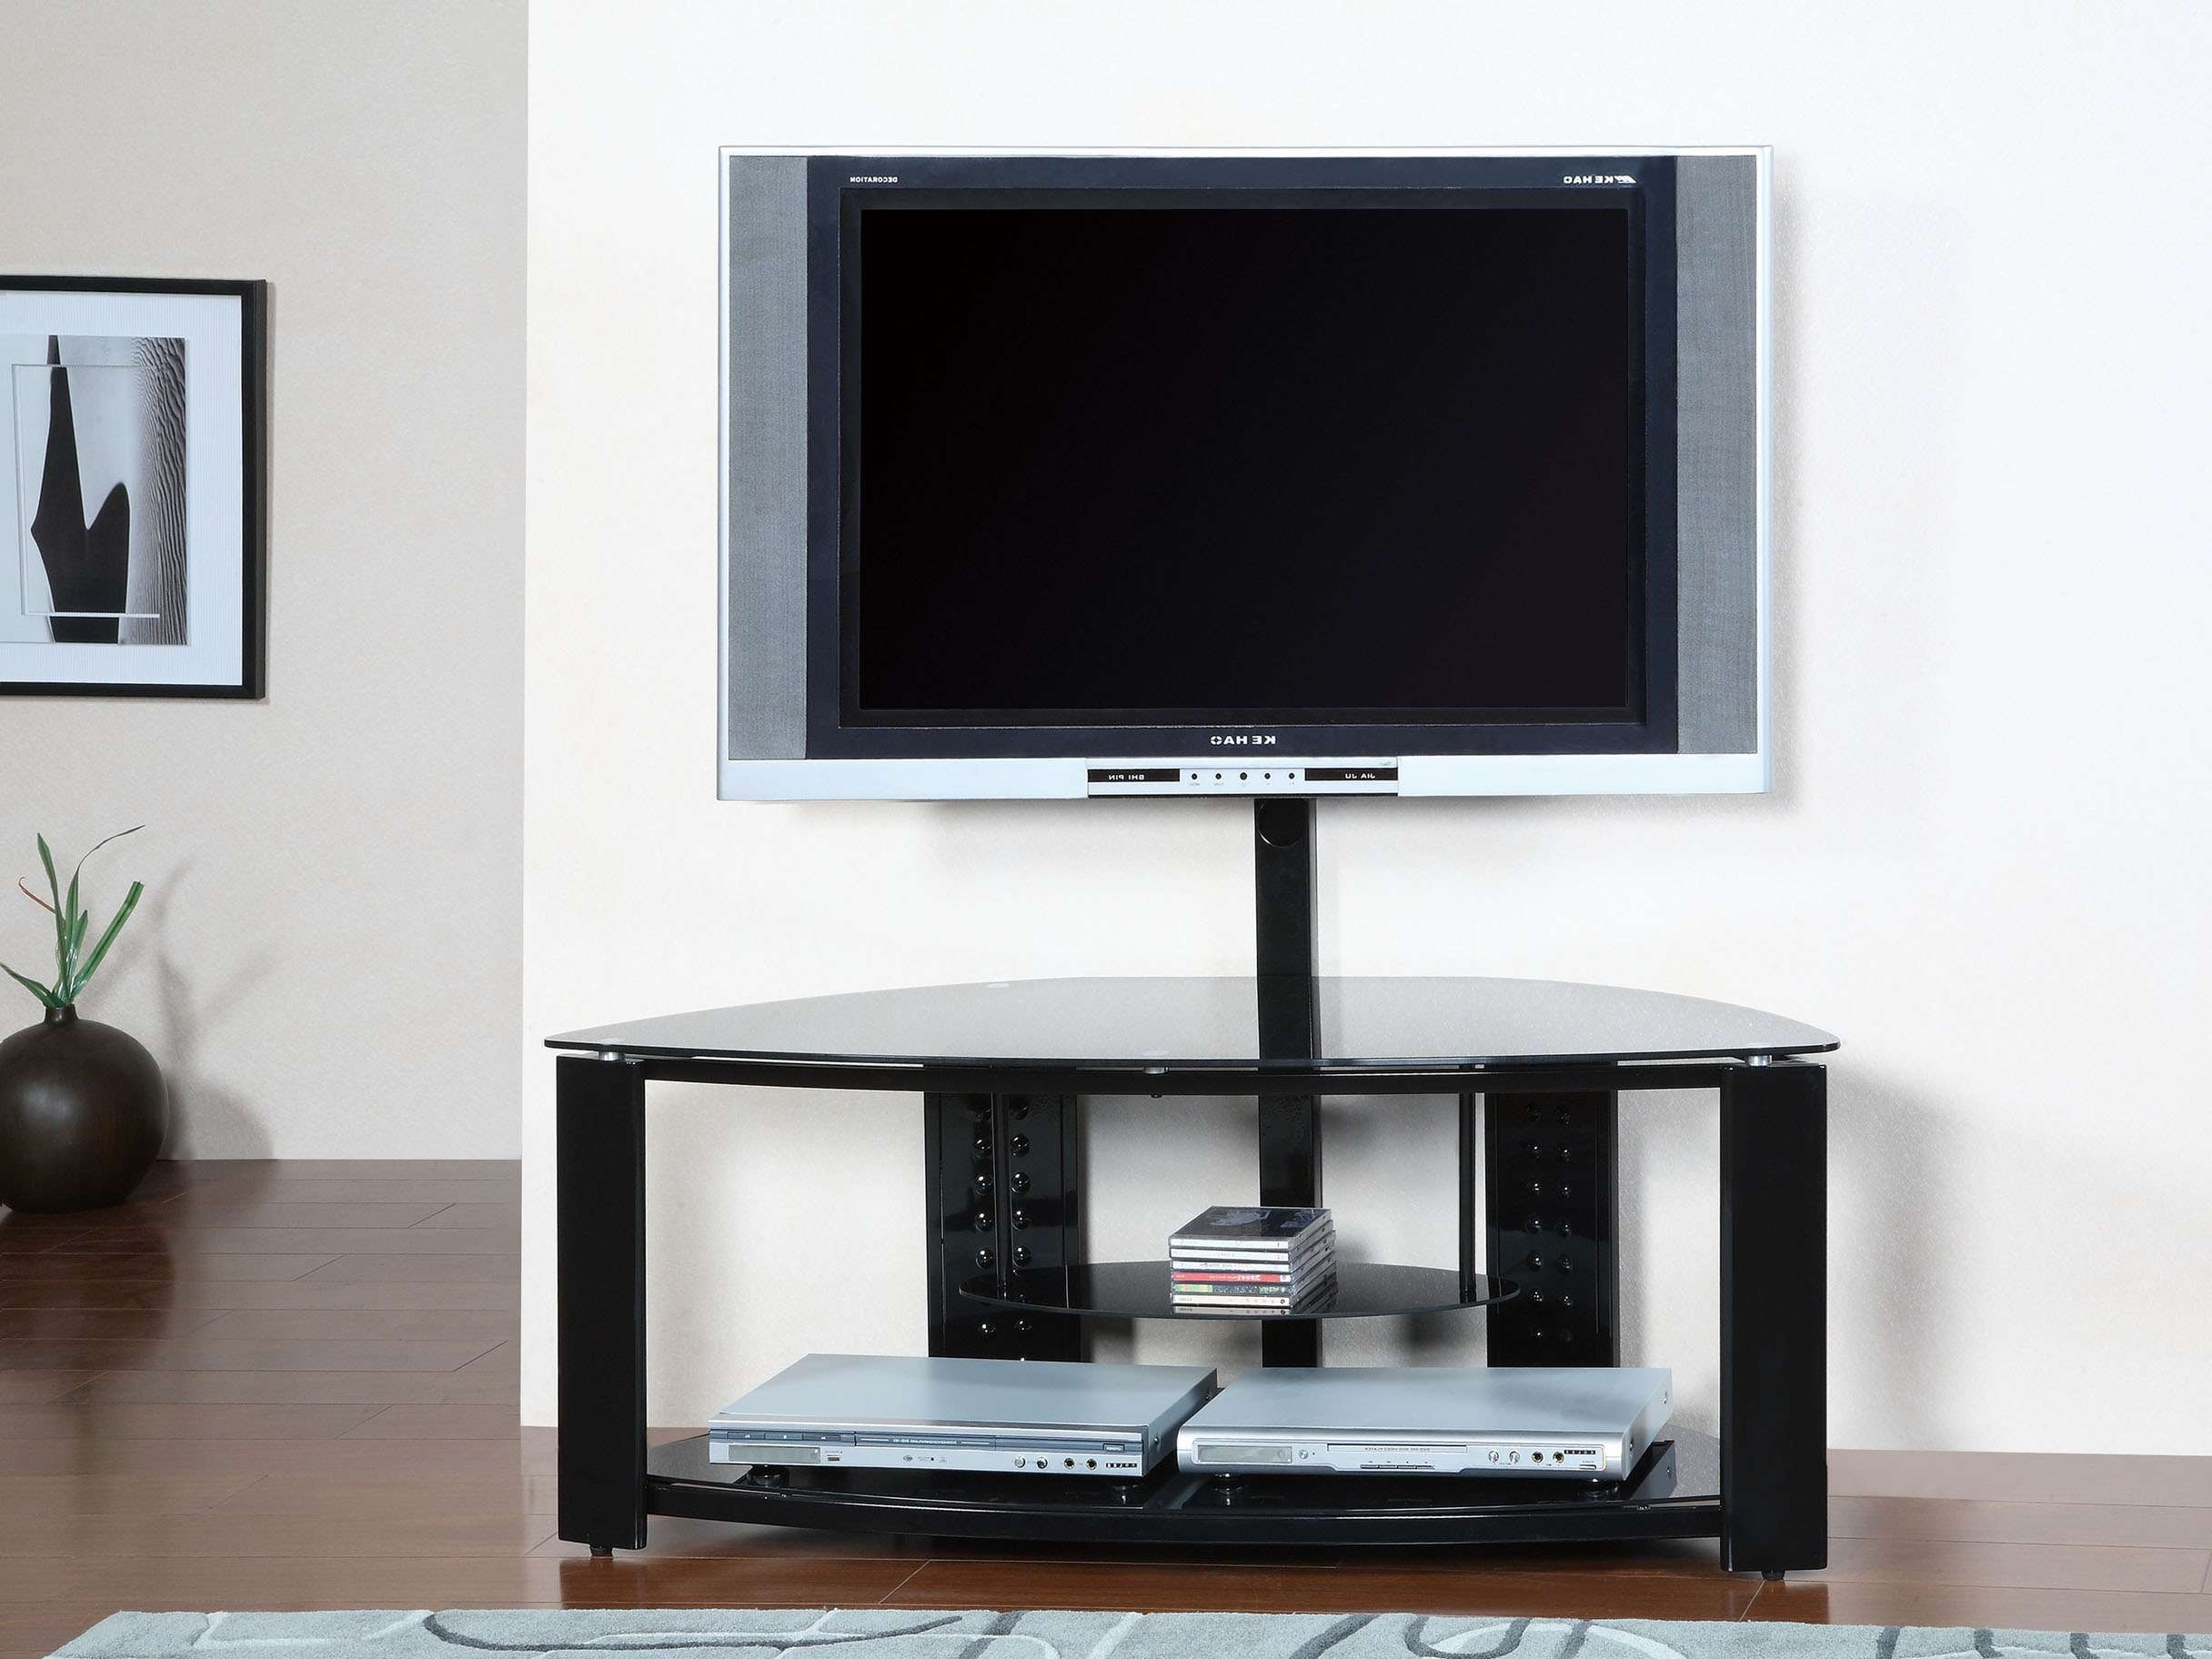 Glass Top Flat Screen Tv Cabinet With Black Iron Frame Of Gorgeous In Wood Tv Stands With Glass Top (View 4 of 15)